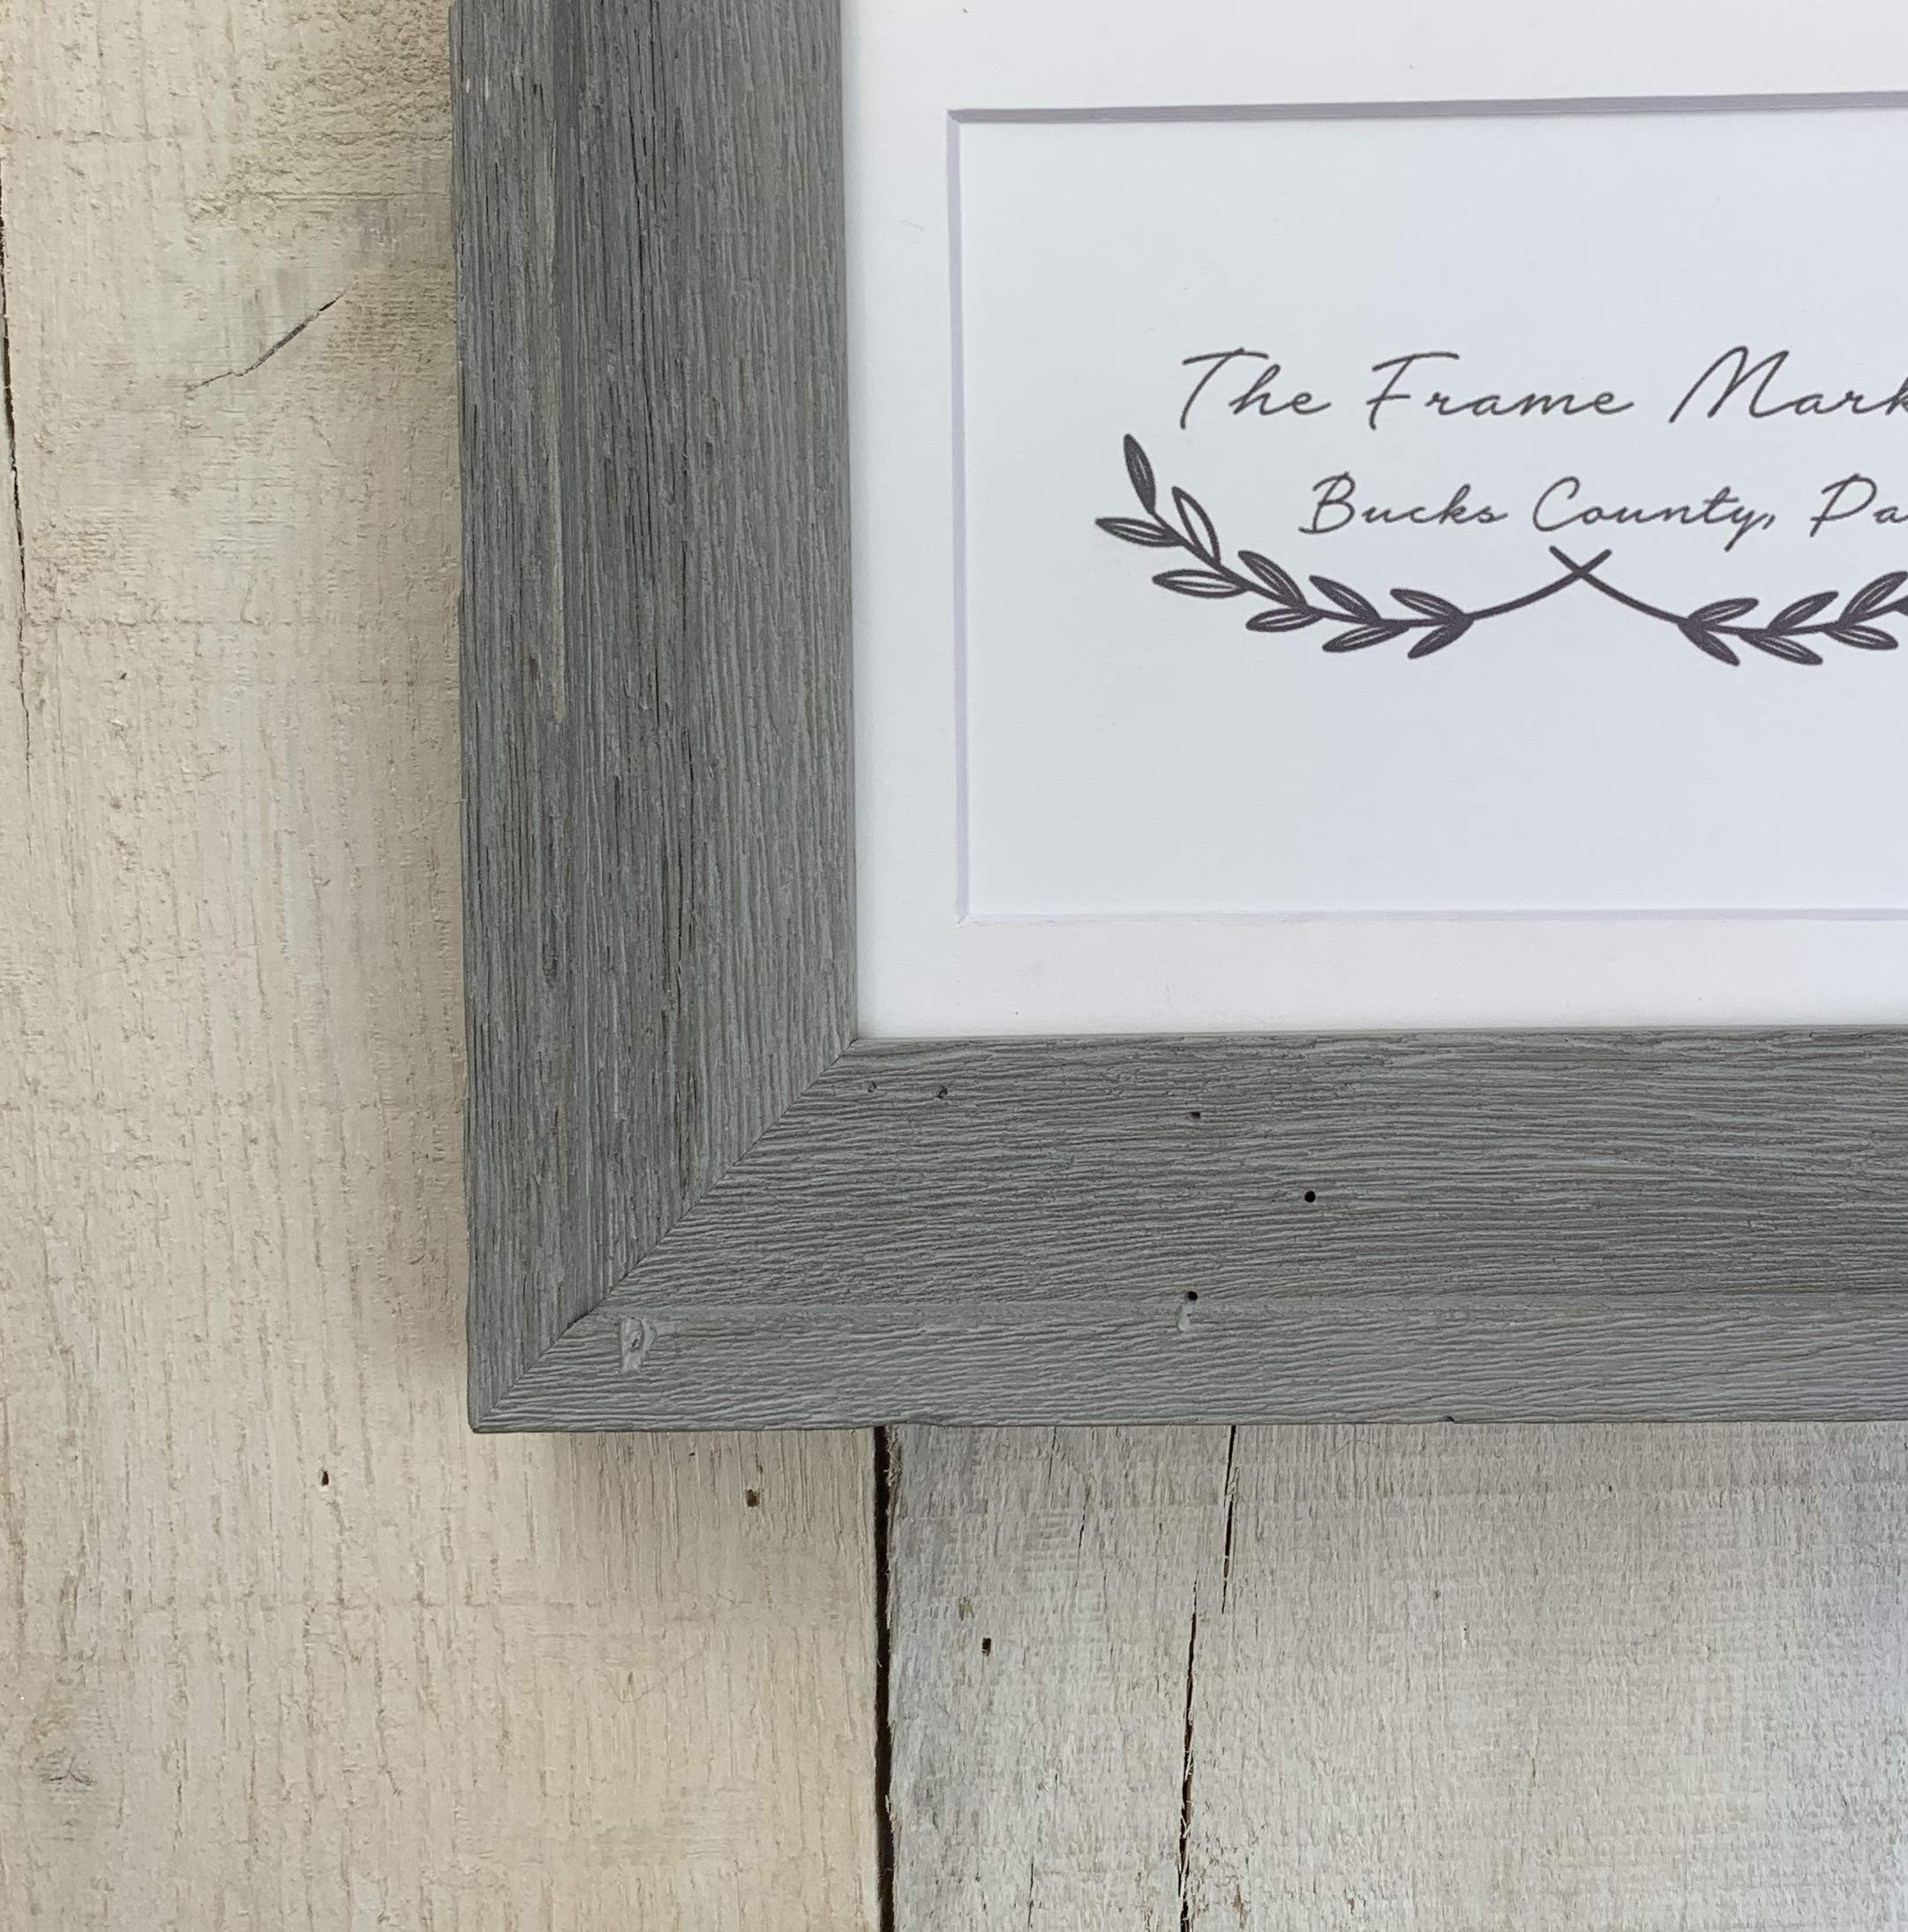 Bucks County Grey Barn Wood Picture Frame 8x10, 9x12, 11x14, 14x16, 16x20 Standard and custom sizes available. by TheFrameMarket